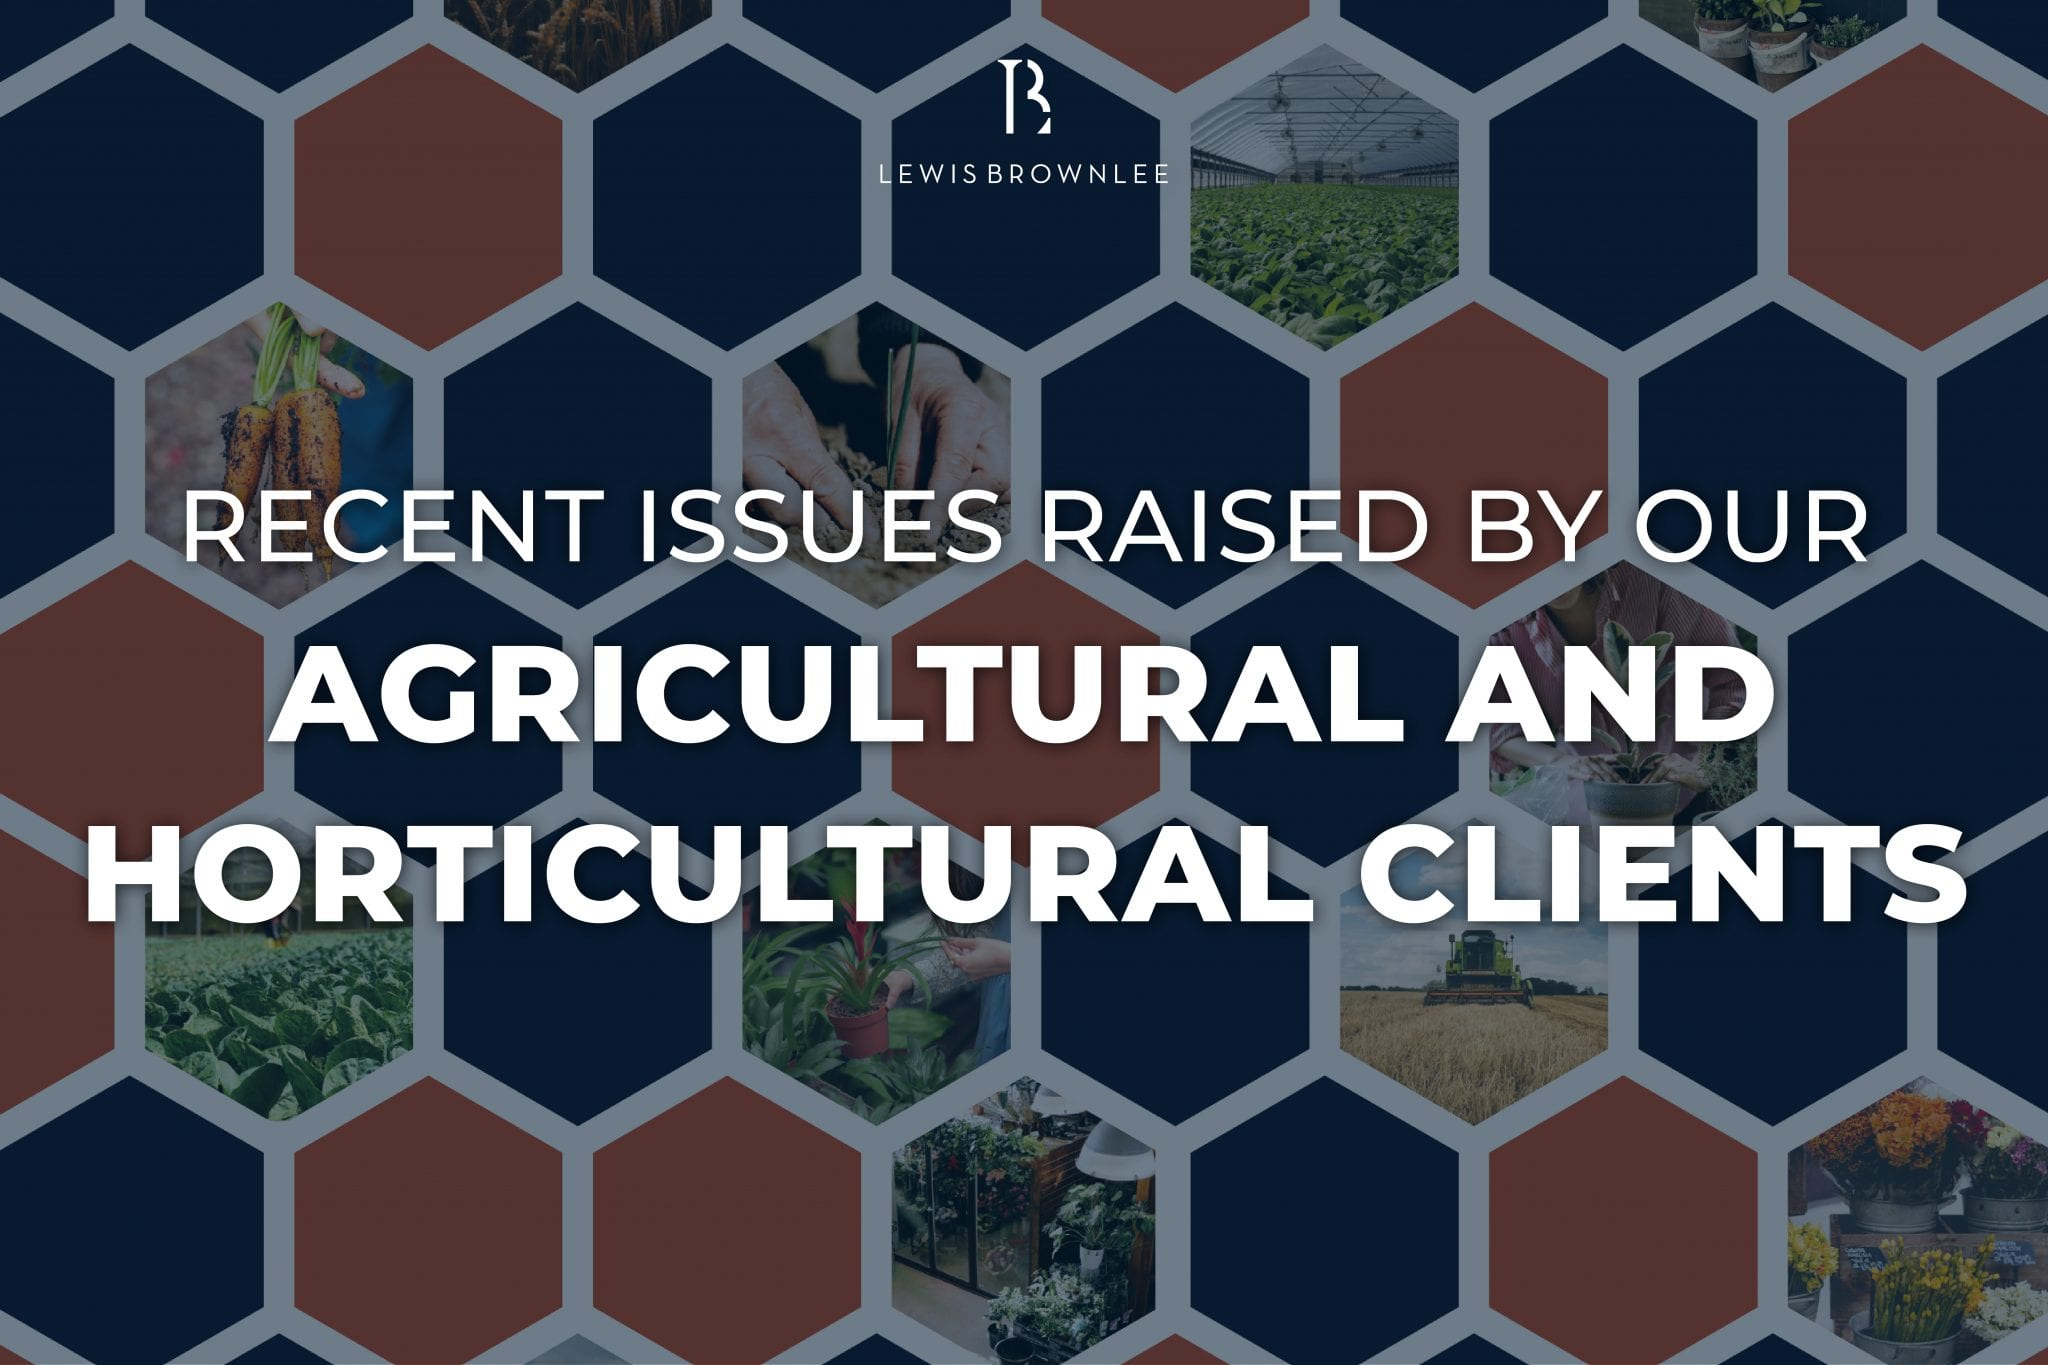 RECENT ISSUES RAISED BY OUR AGRICULTURAL AND HORTICULTURAL CLIENTS